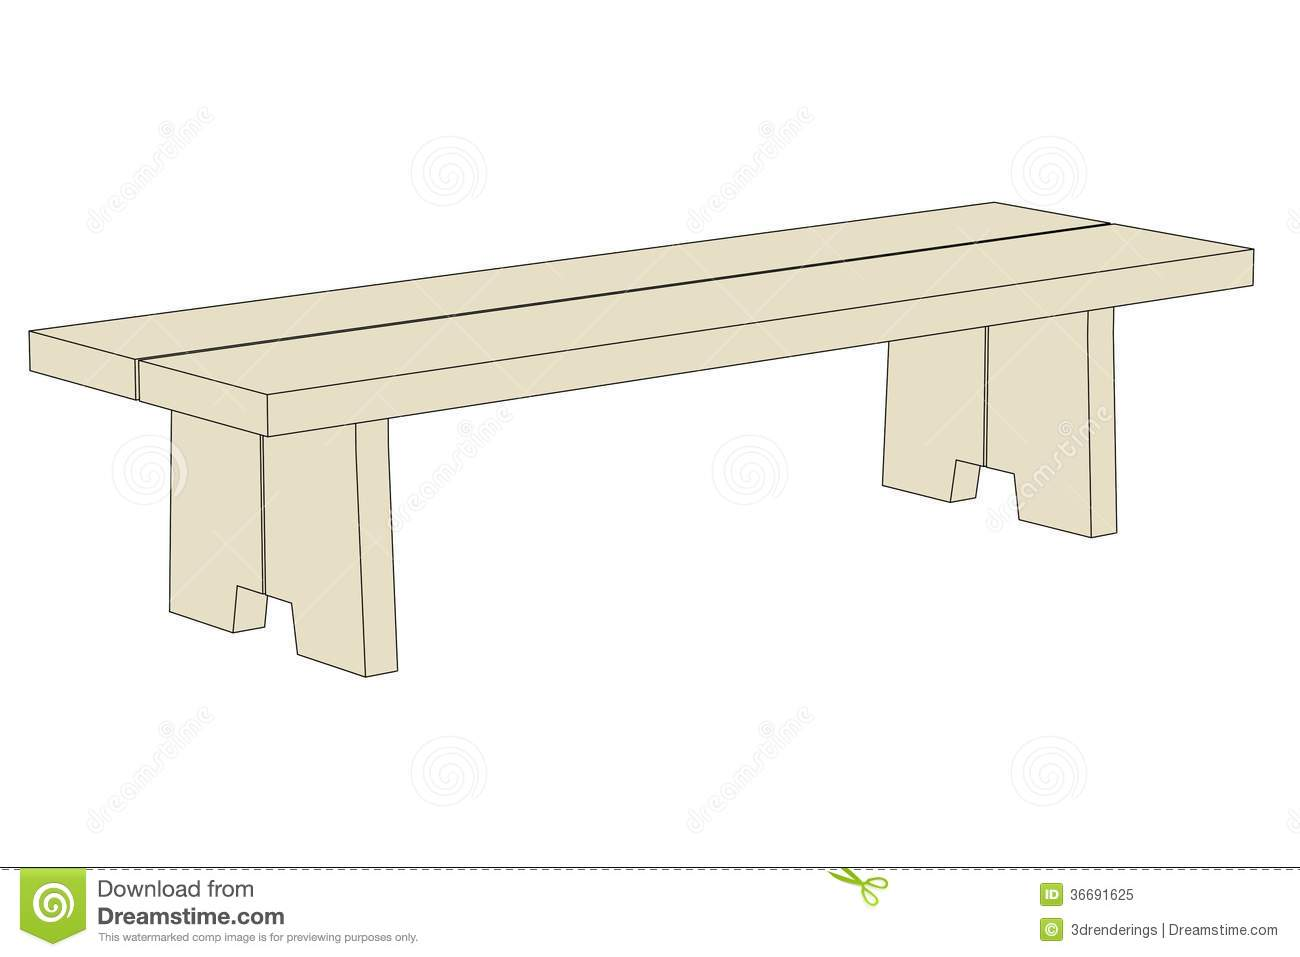 Permalink to simple wooden park bench plans